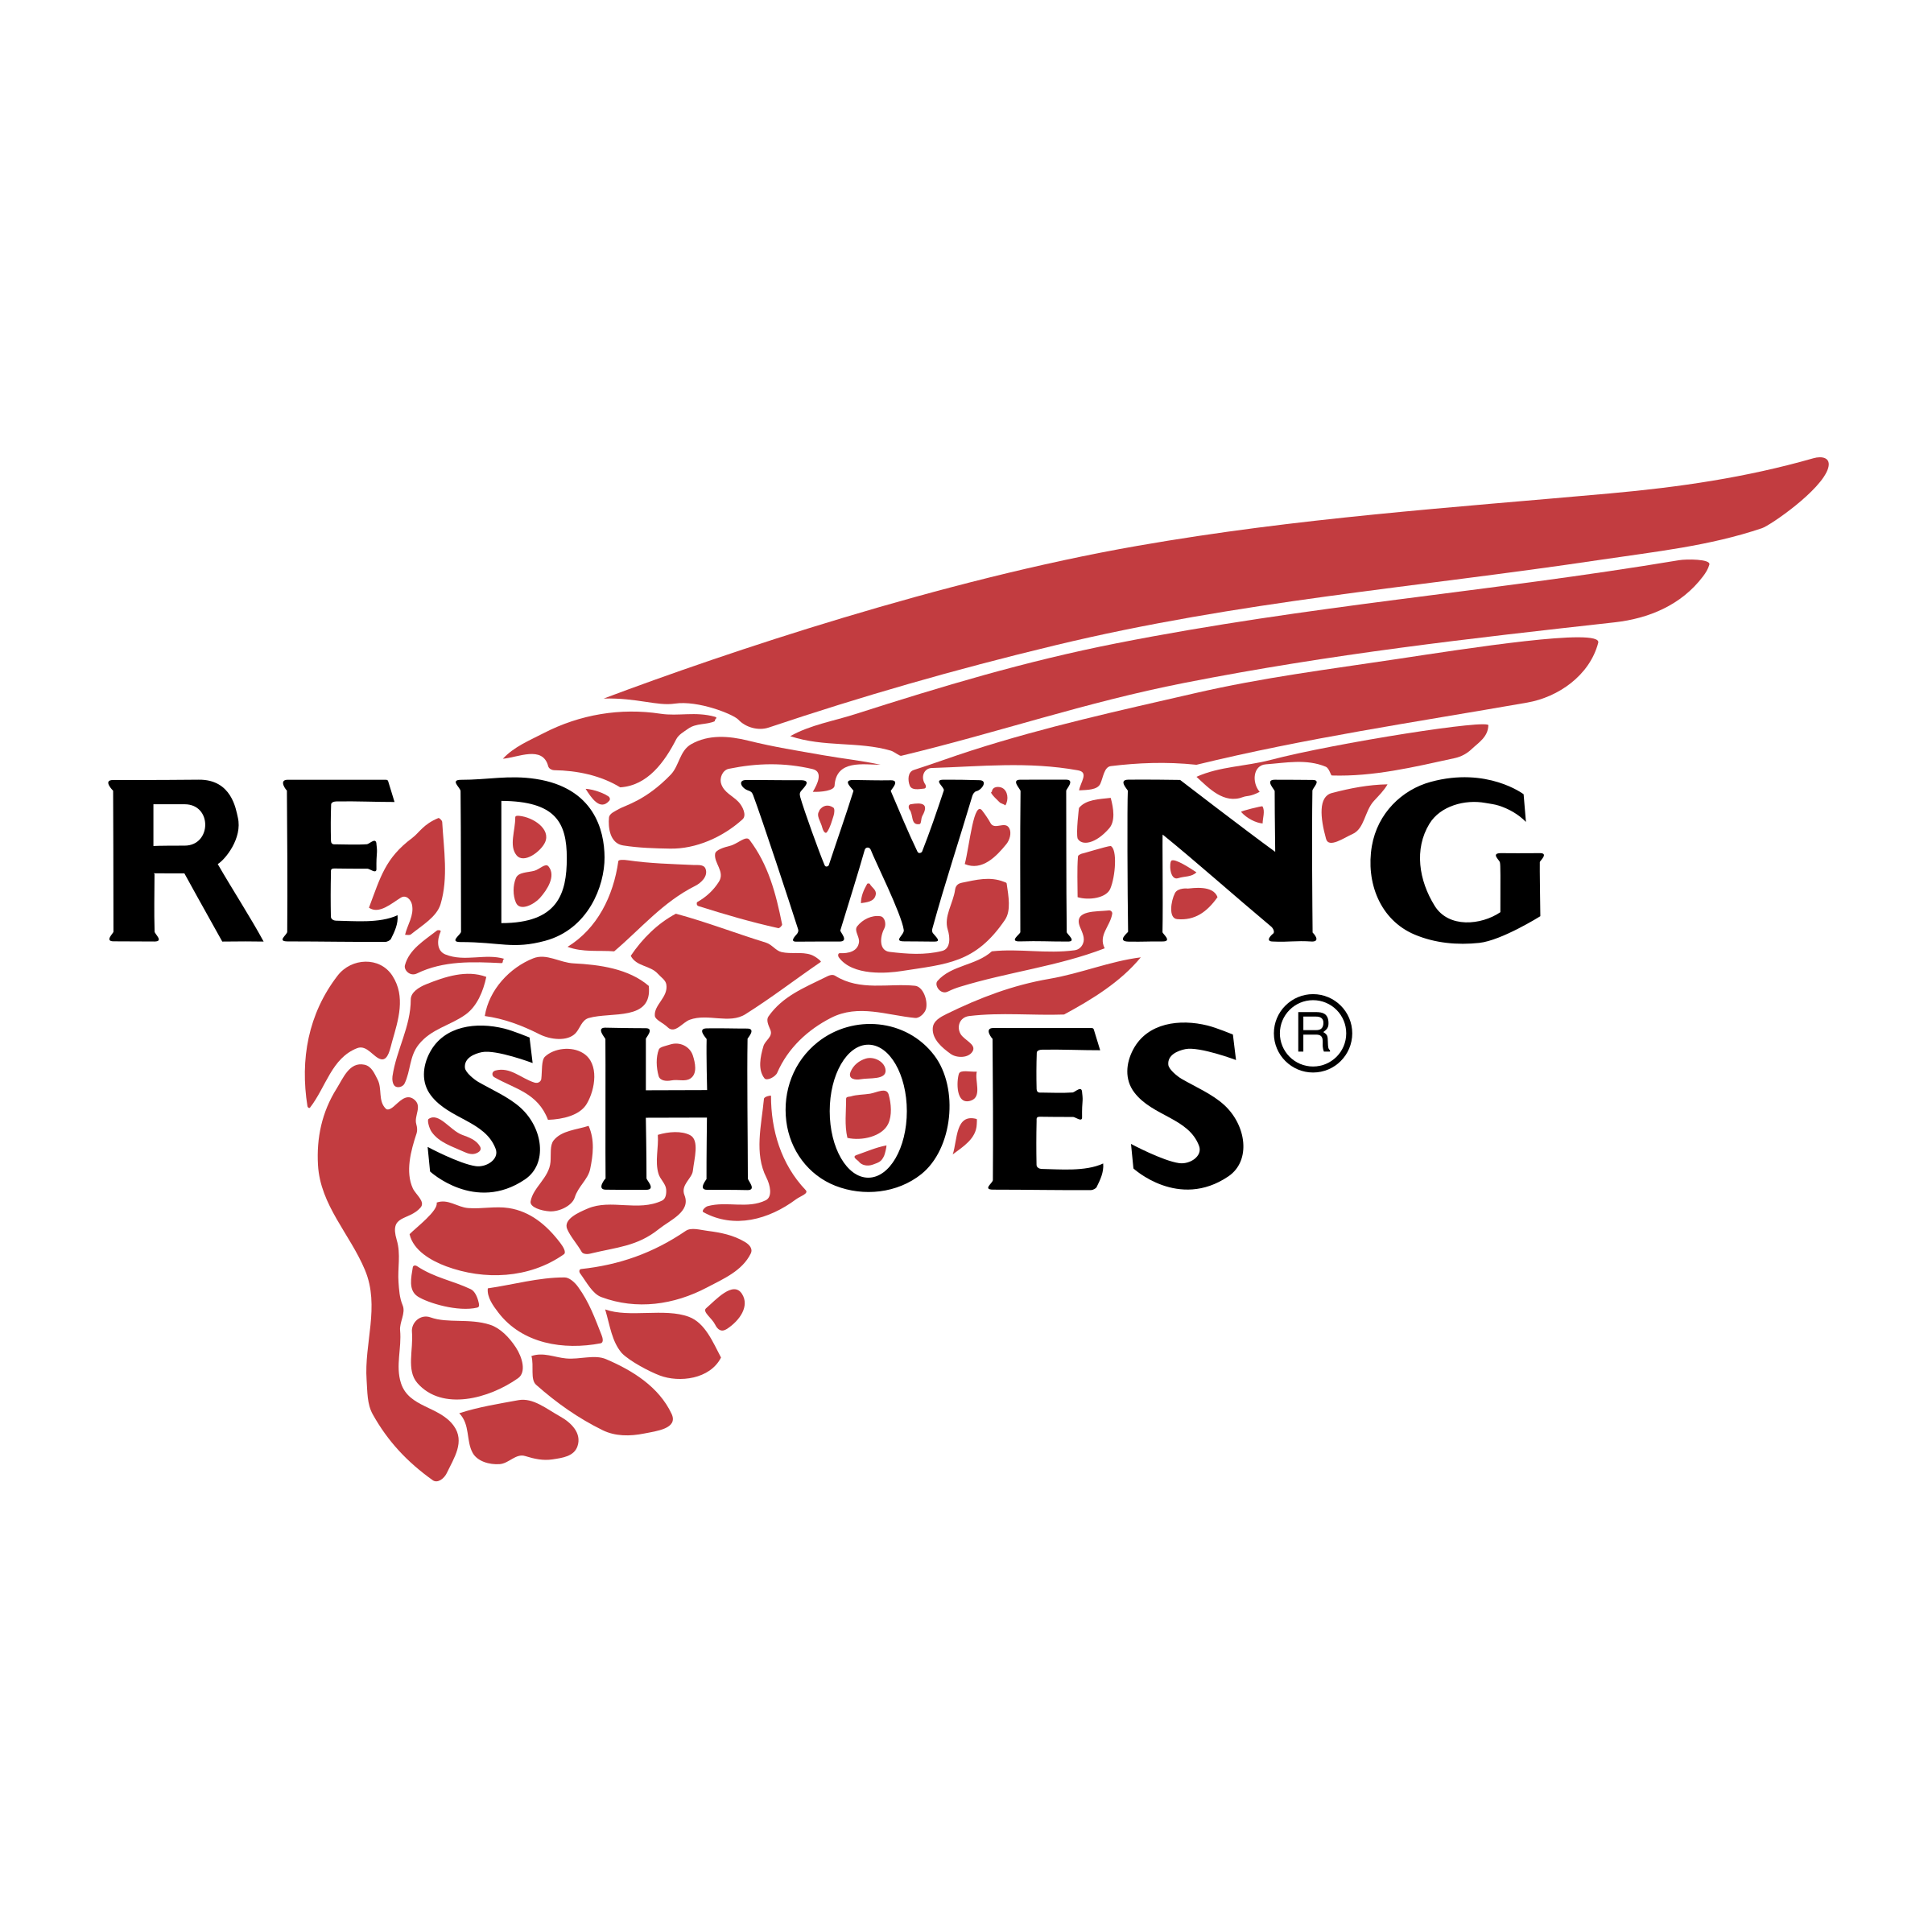 Red wing shoes logo png. Transparent svg vector freebie